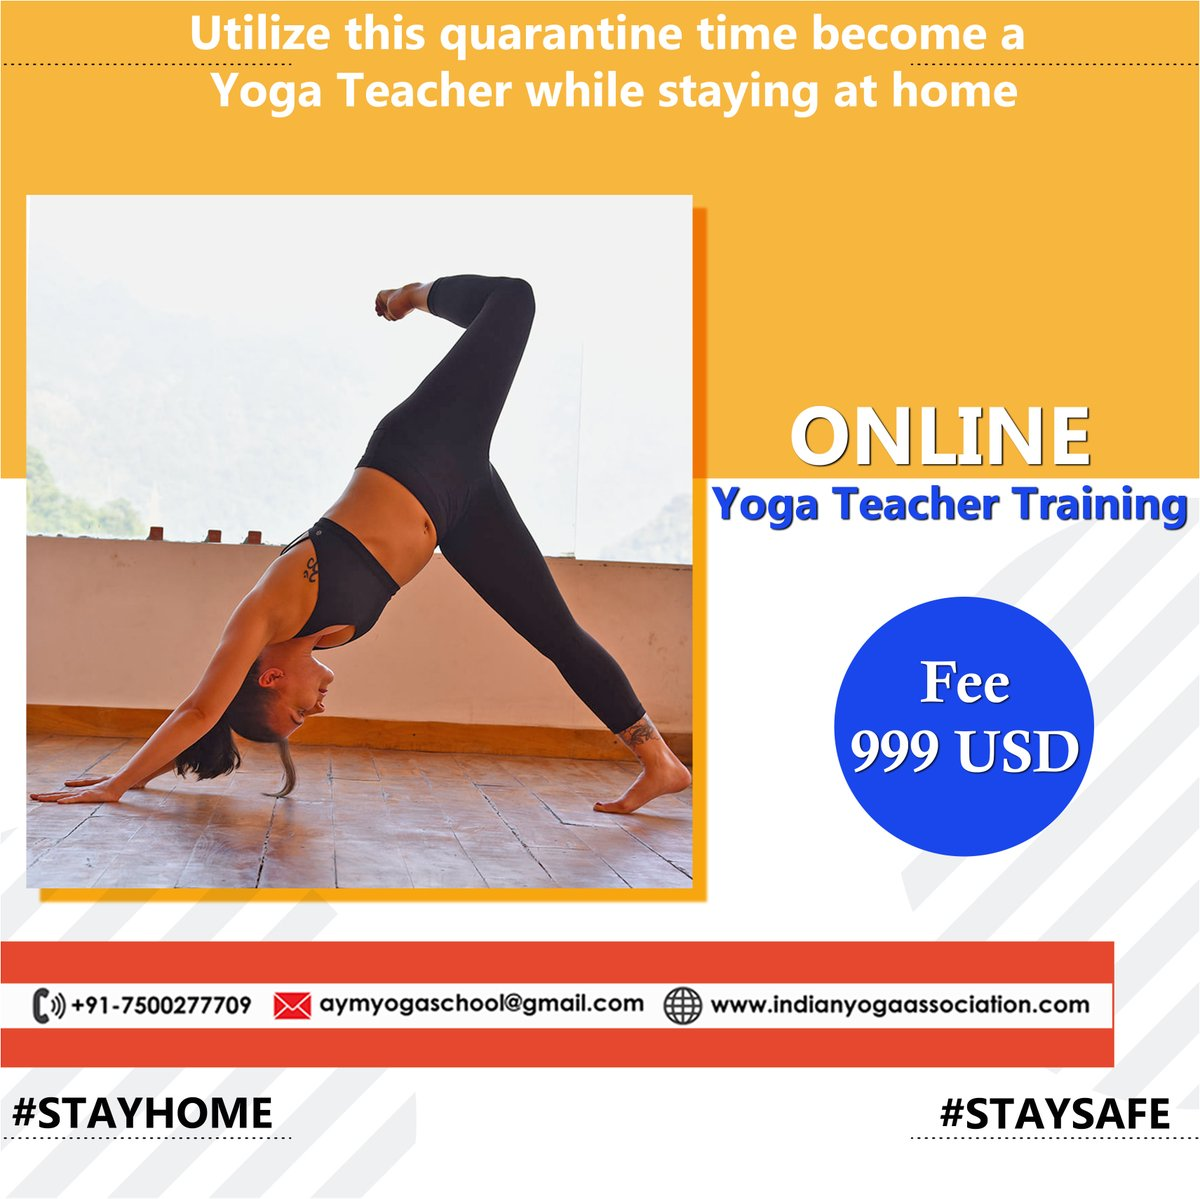 Aymayurvedaschool On Twitter Live Online Yoga Teacher Training At Aym Yoga School In Rishikesh India Use This Quarantine Time To Dive Deeper To Self And Become A Yoga Teacher You Can Join